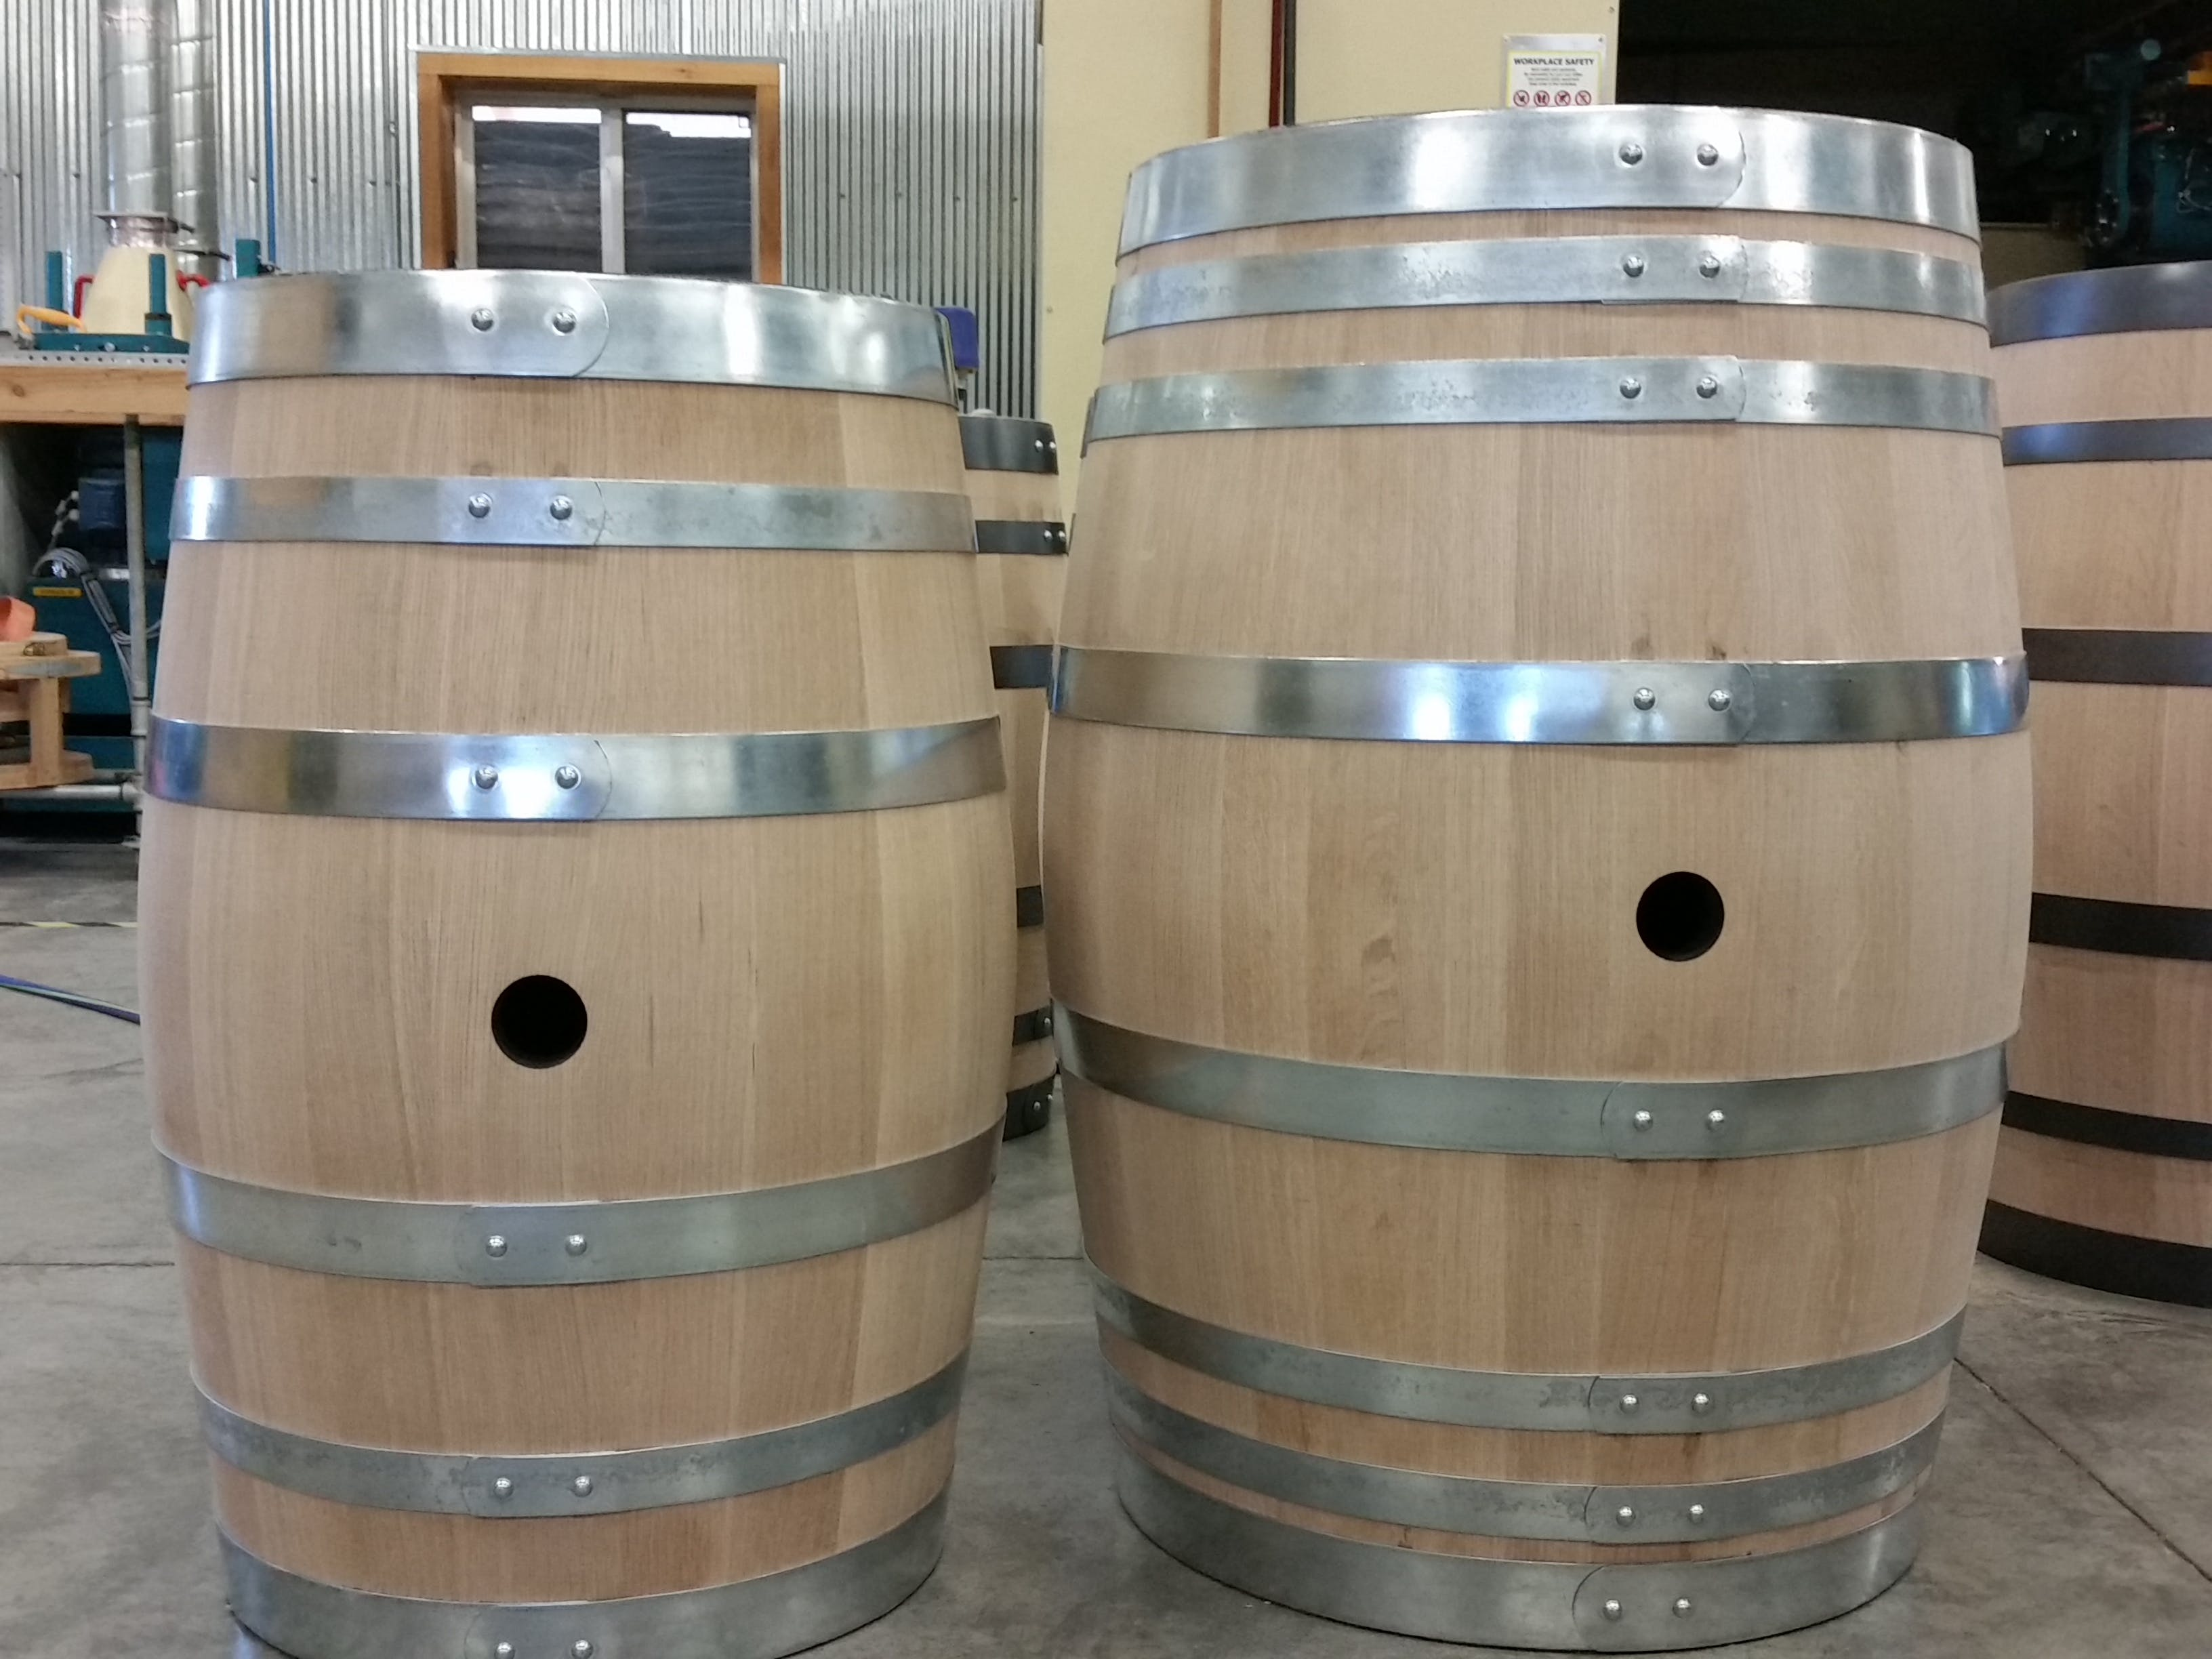 image of oak barrels sourced from Adirondack Cooperage